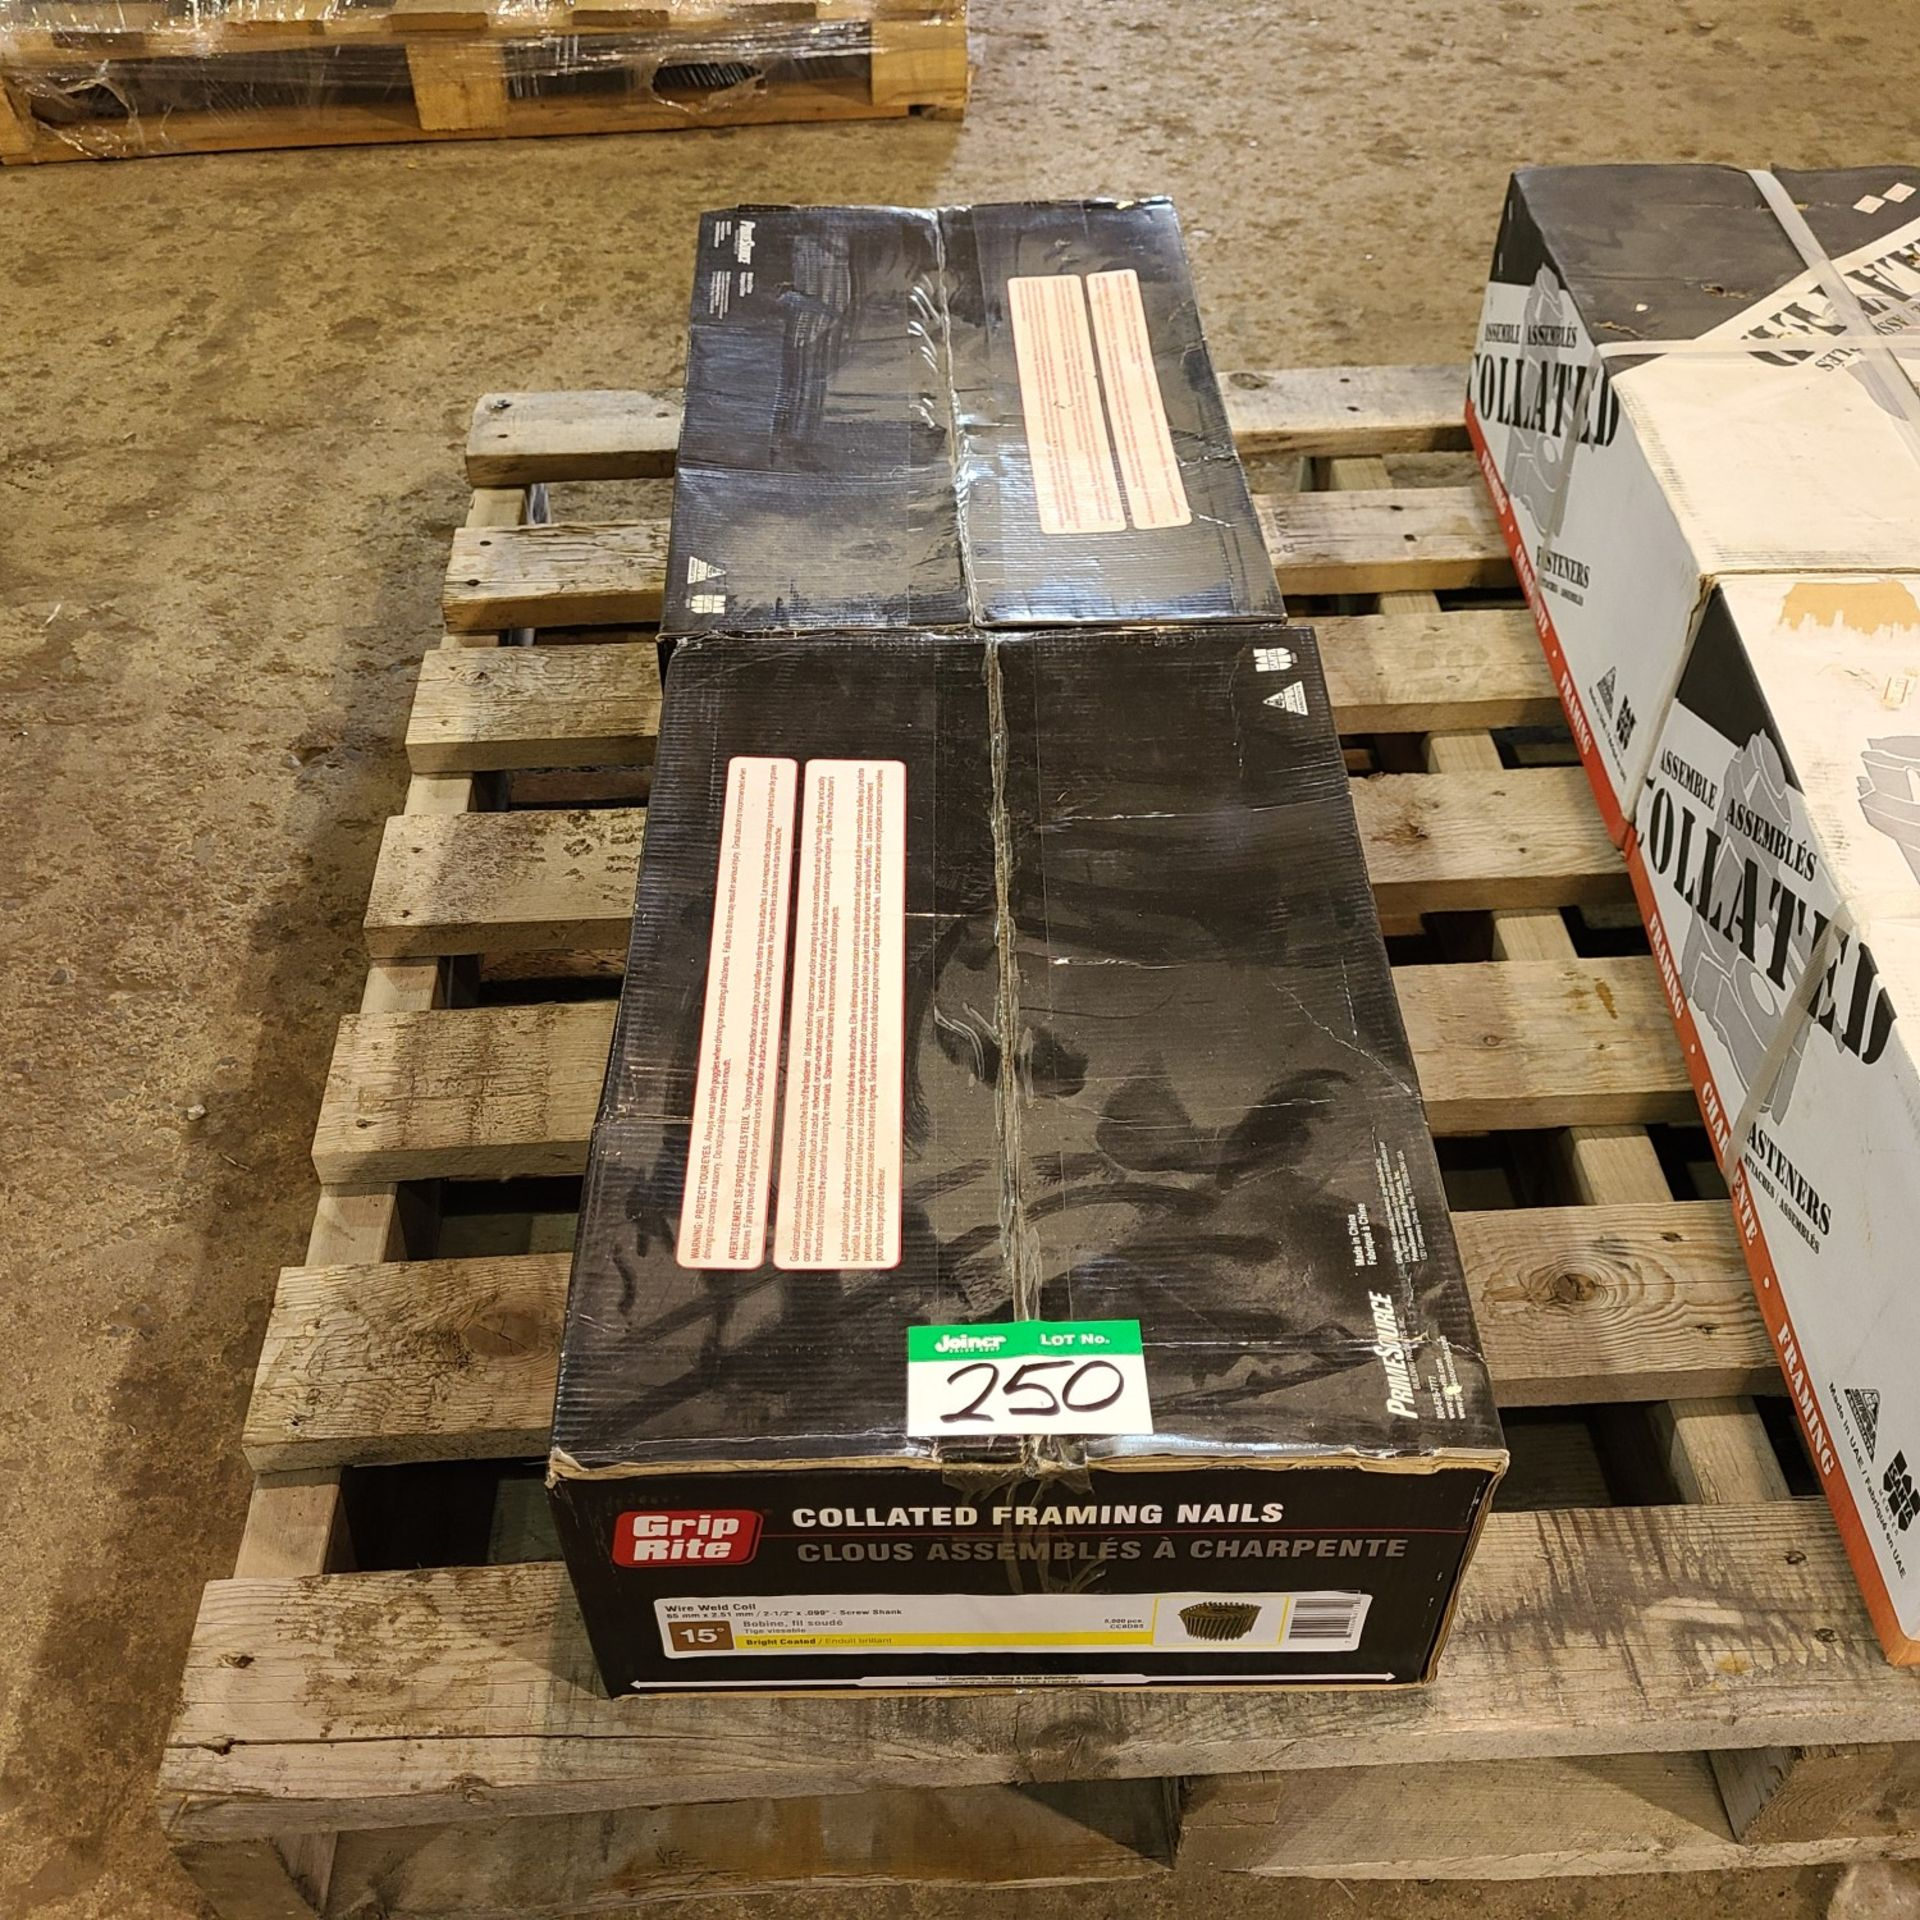 2 BOXES OF GRIP RITE COLLATED FRAMING NAILS 65M X 2.51MM SCREWSHANK